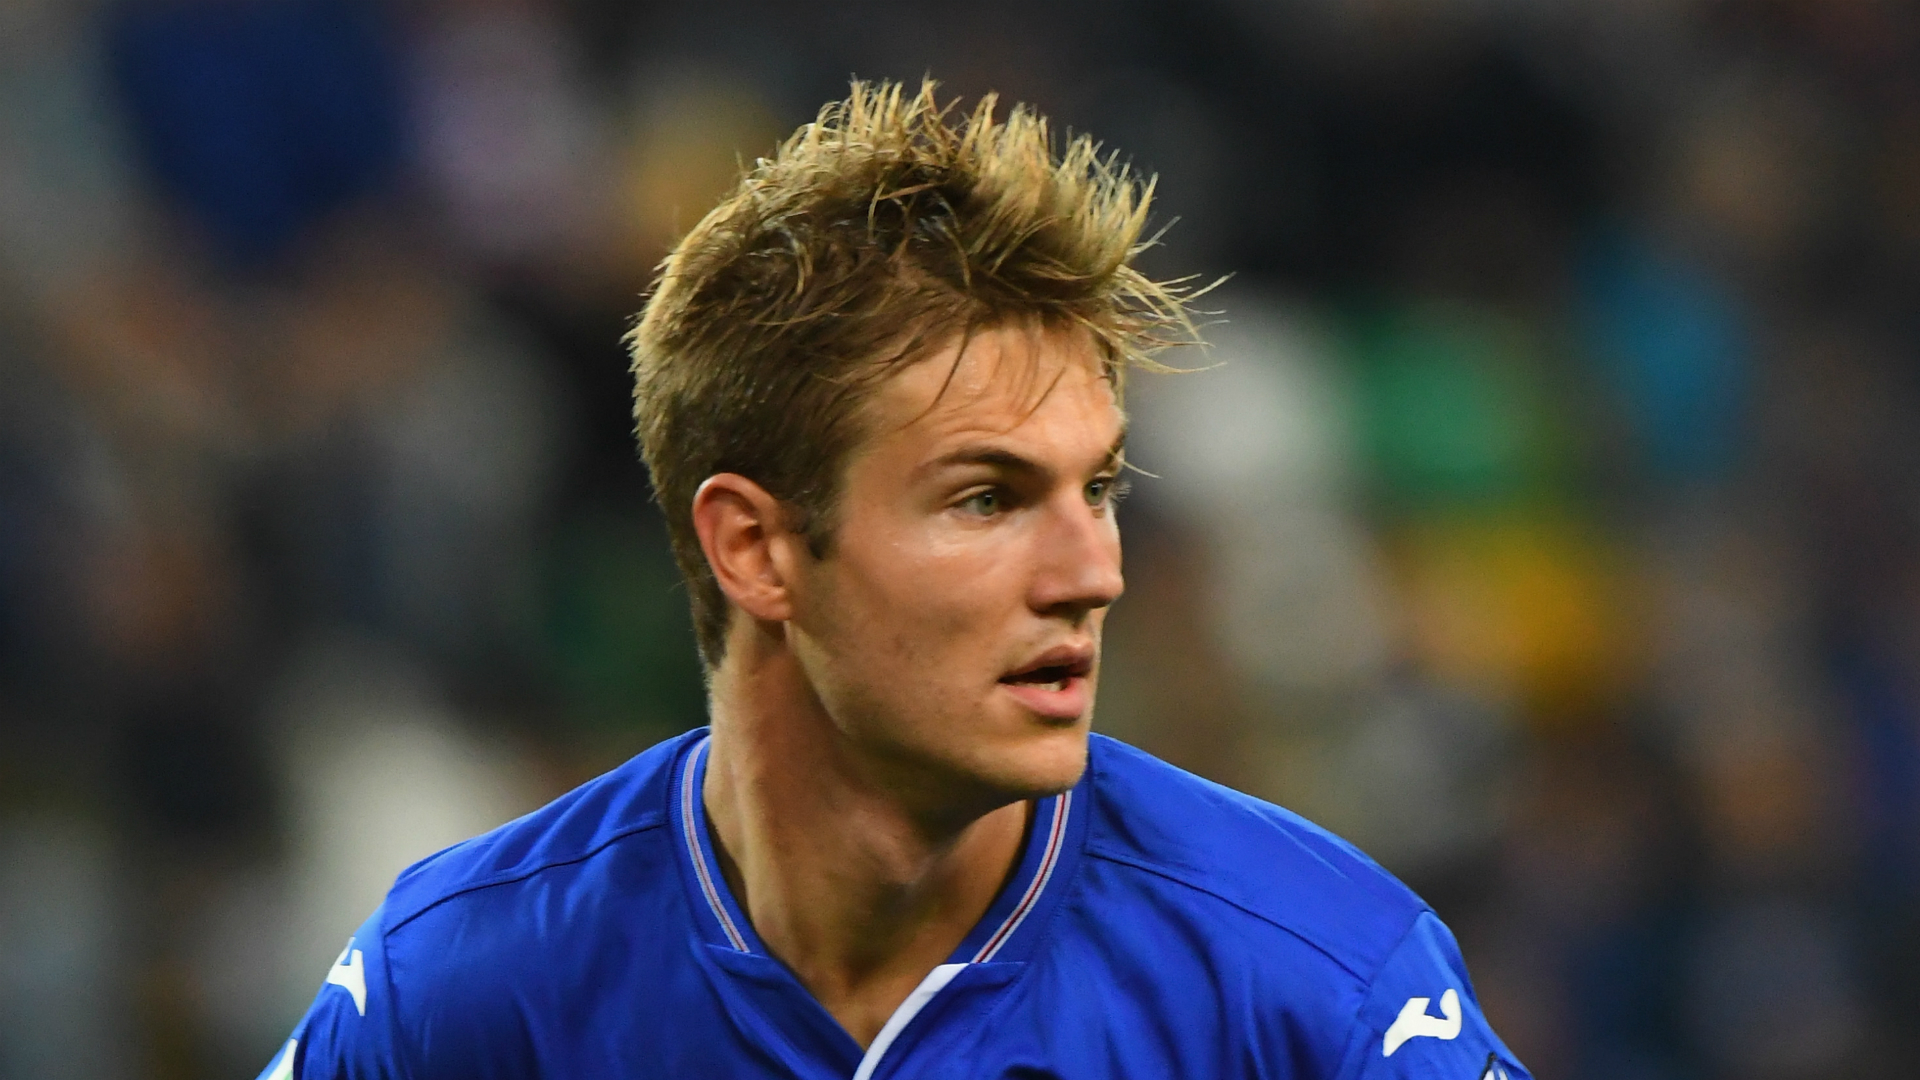 Sampdoria defender Joachim Andersen has joined Ligue 1 side Lyon in a deal worth up to €30million.